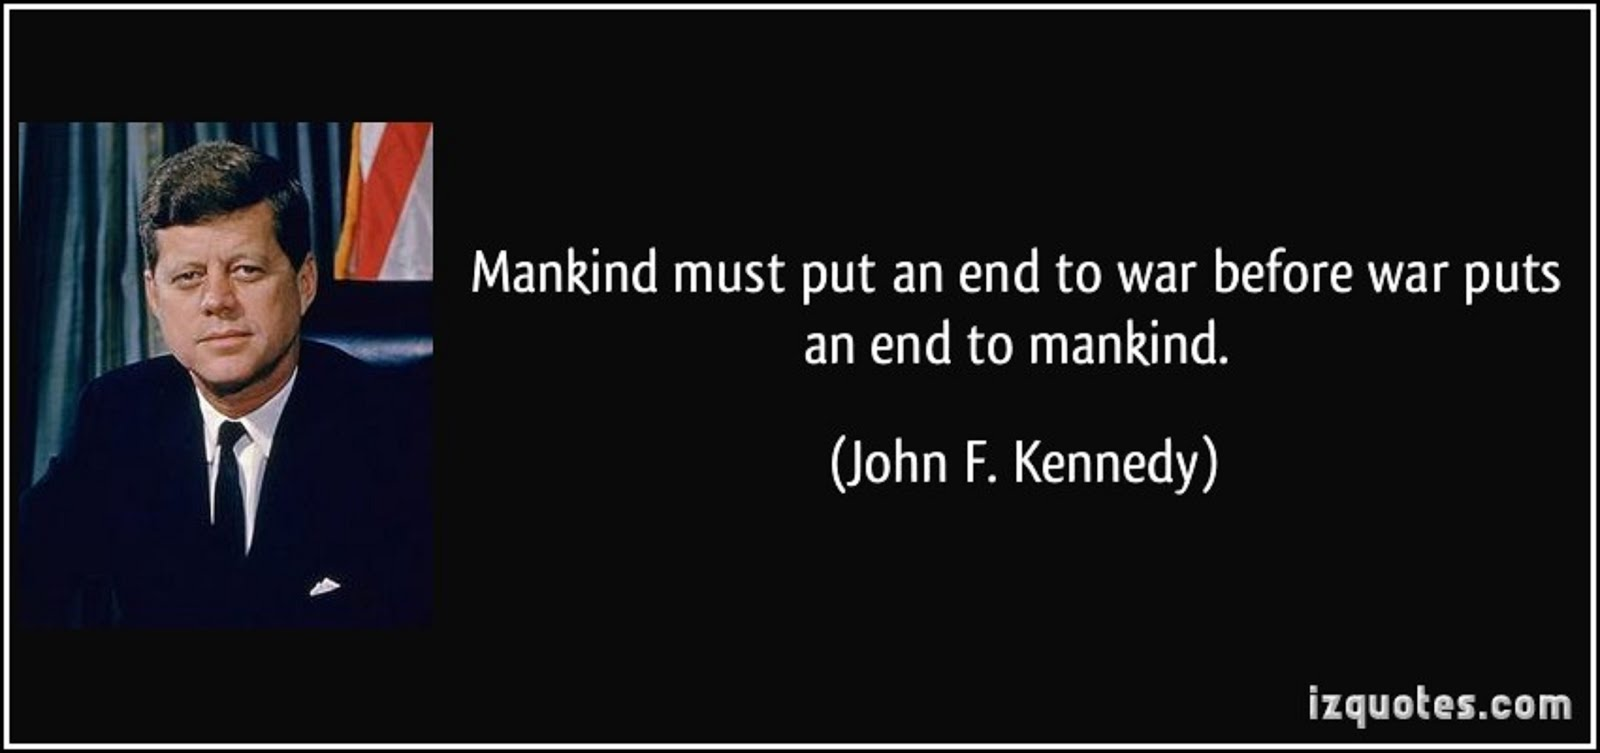 MANKIND MUST PUT AN END TO WAR BEFORE WAR PUTS AN END TO MANKIND